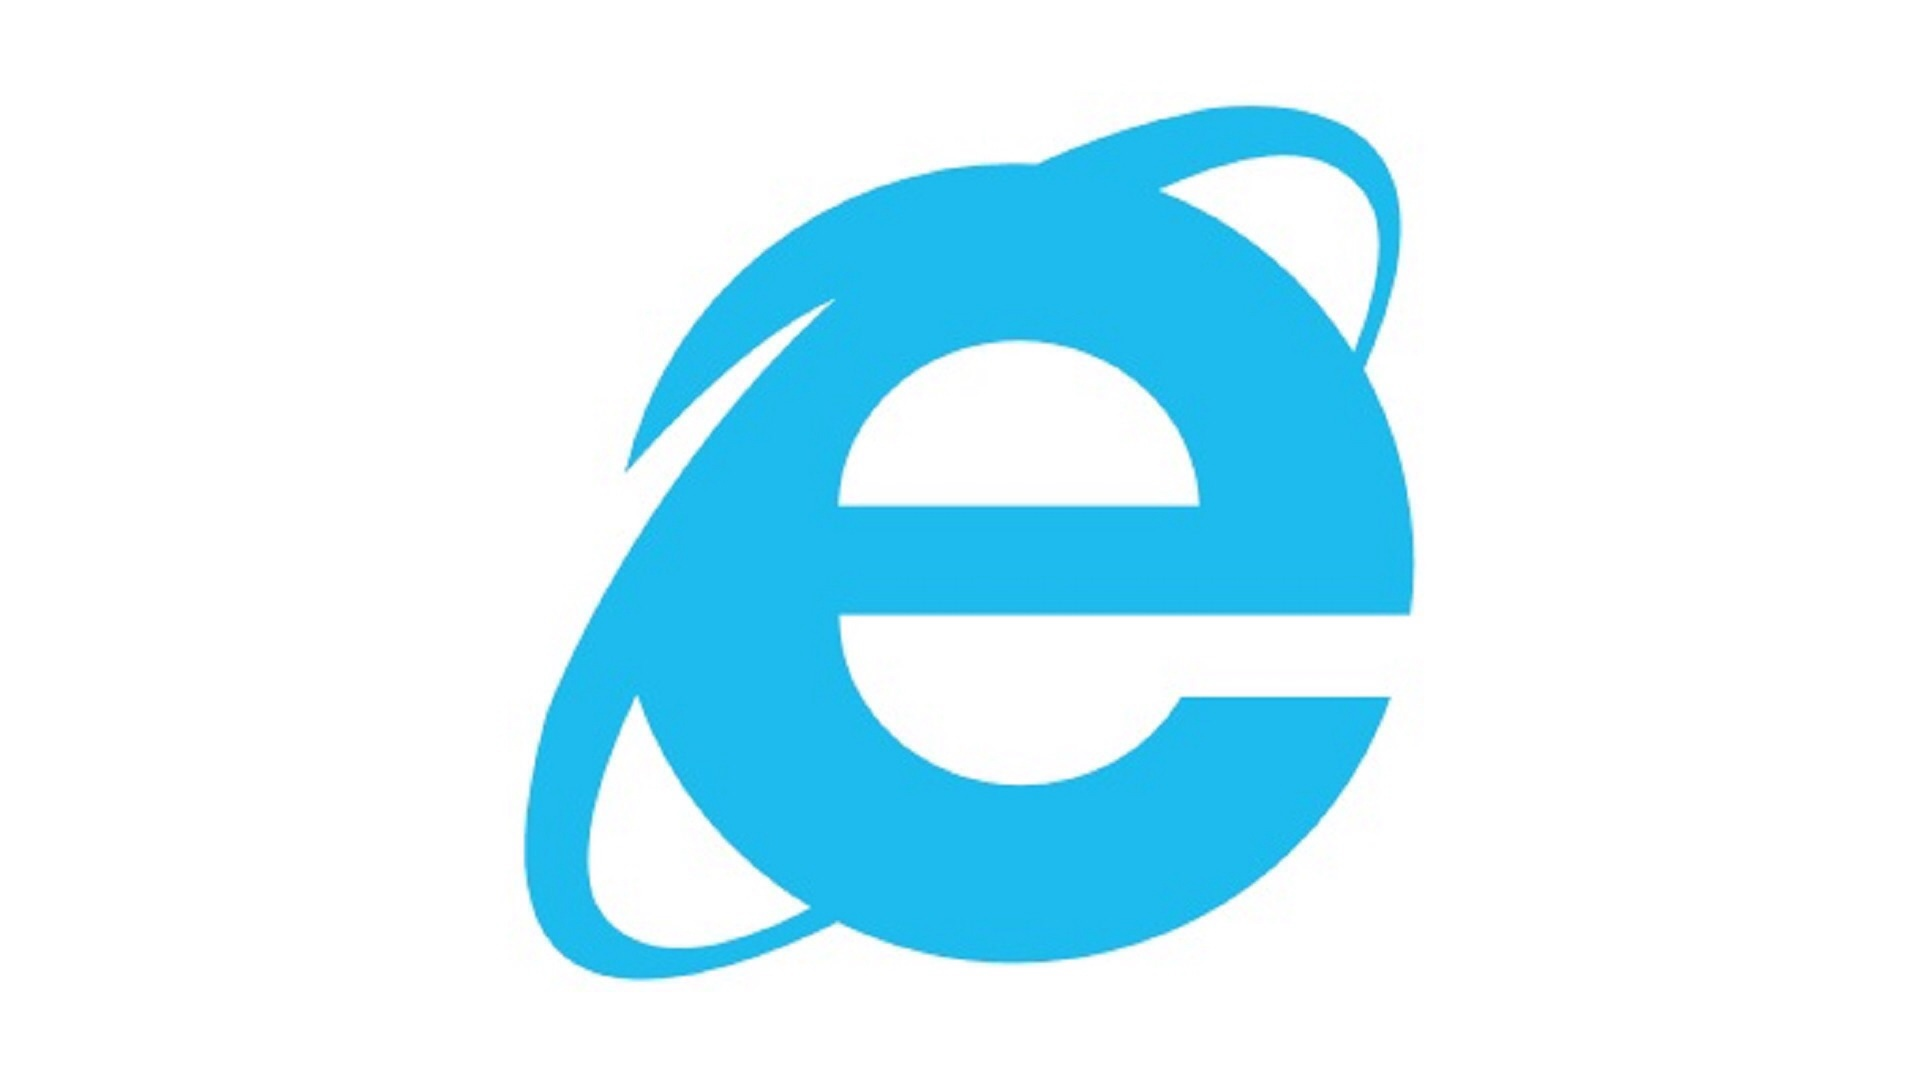 """End of Life"" Notice to Appear in Internet Explorer 8, 9, 10"